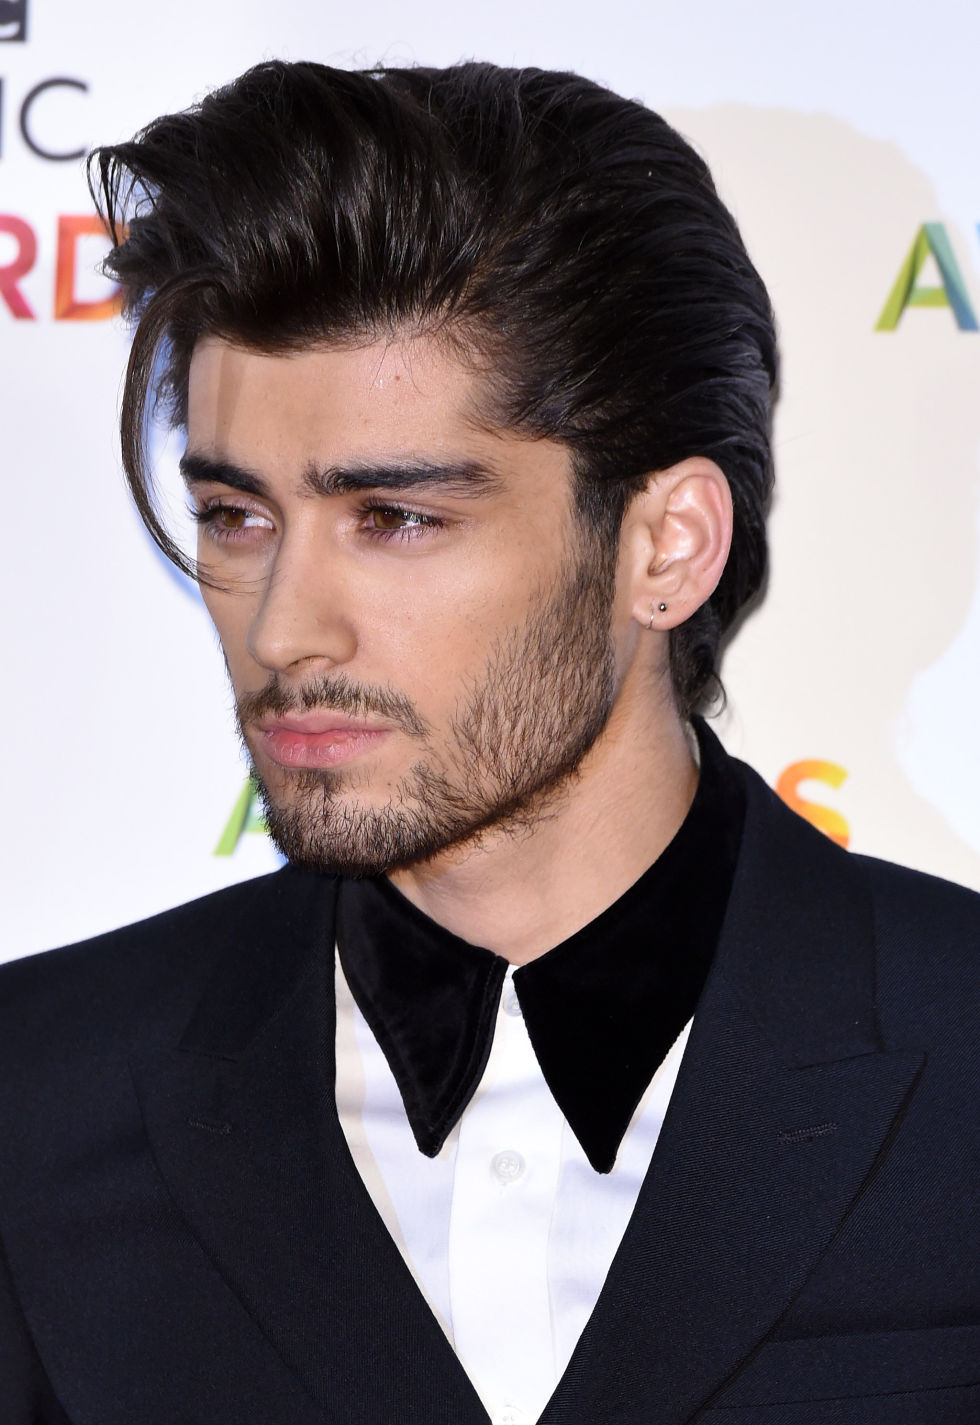 Zayn Malik LEAVES One Direction!